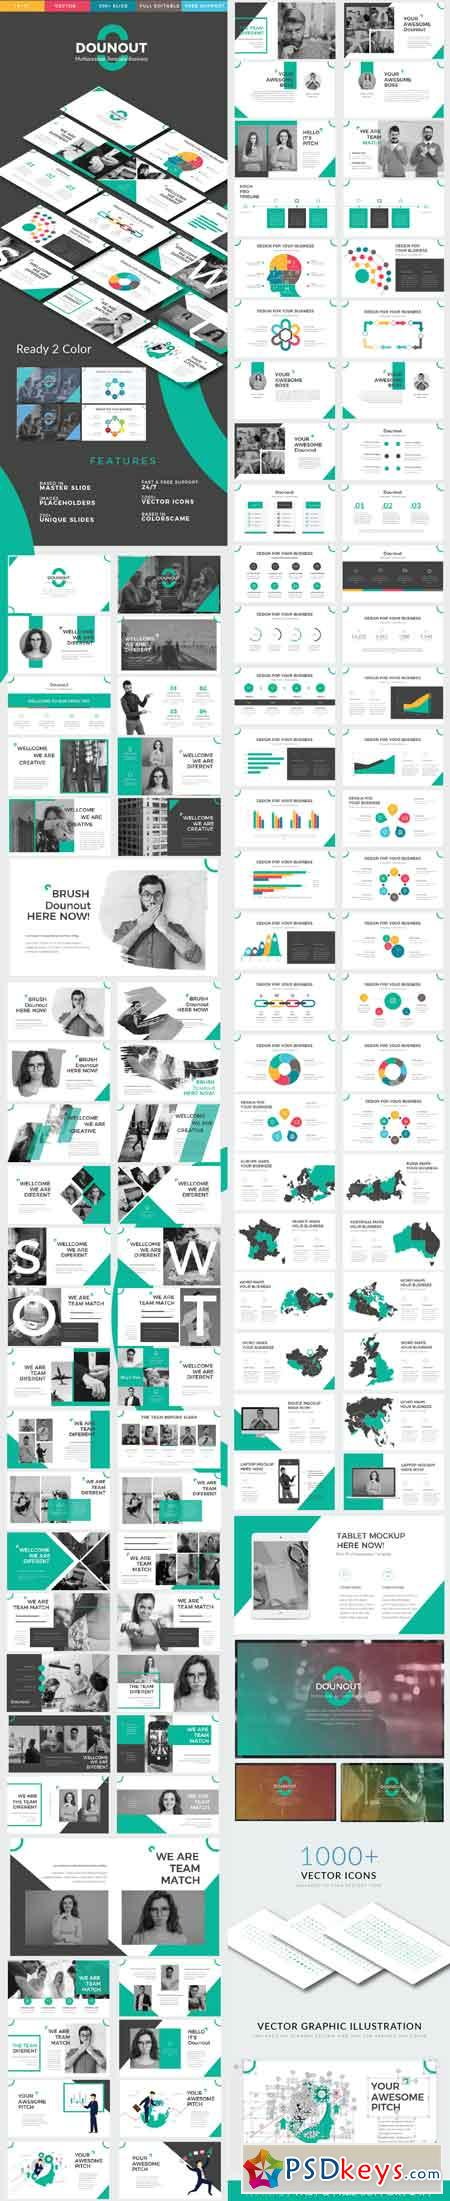 Dounot Powerpoint Template 20963359